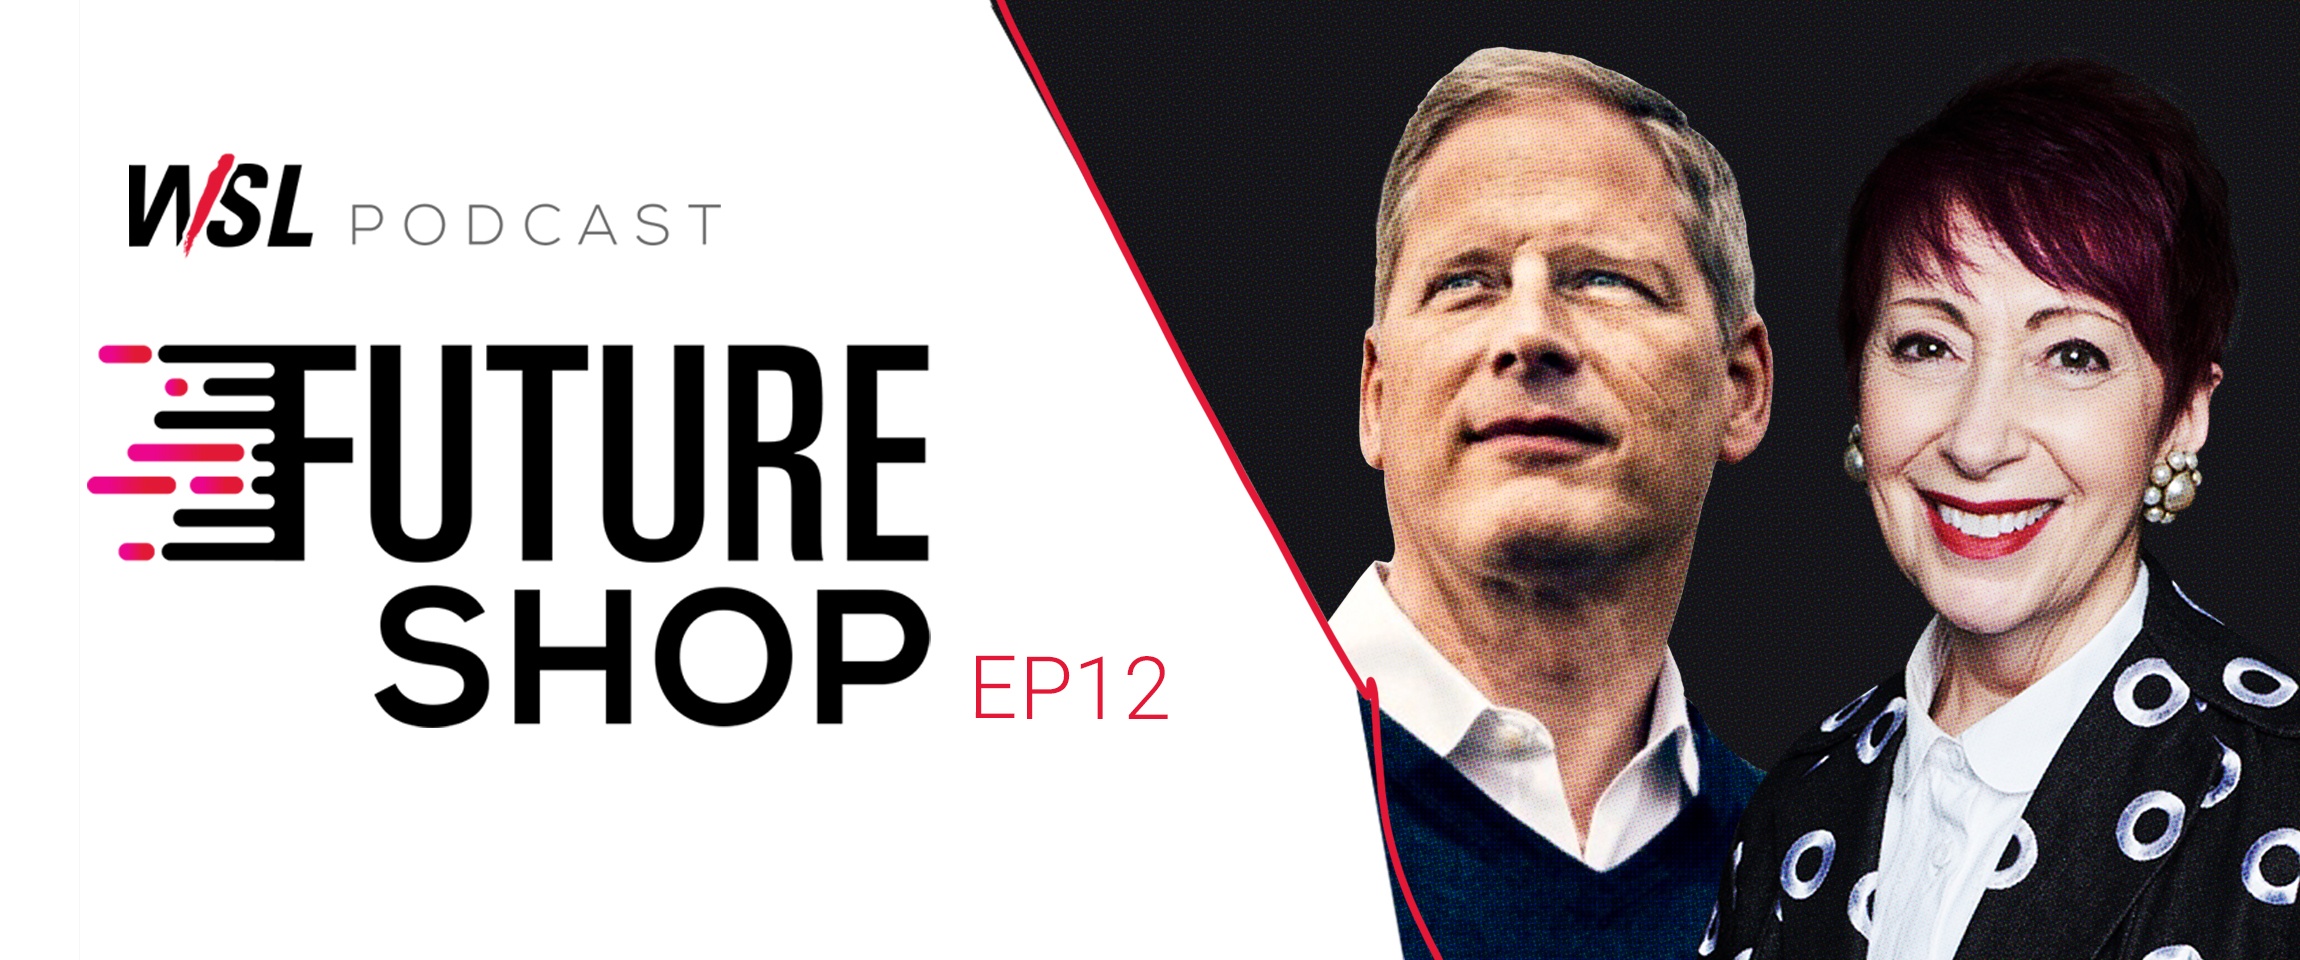 The New Language of Retail - Future Shop Podcast EP12